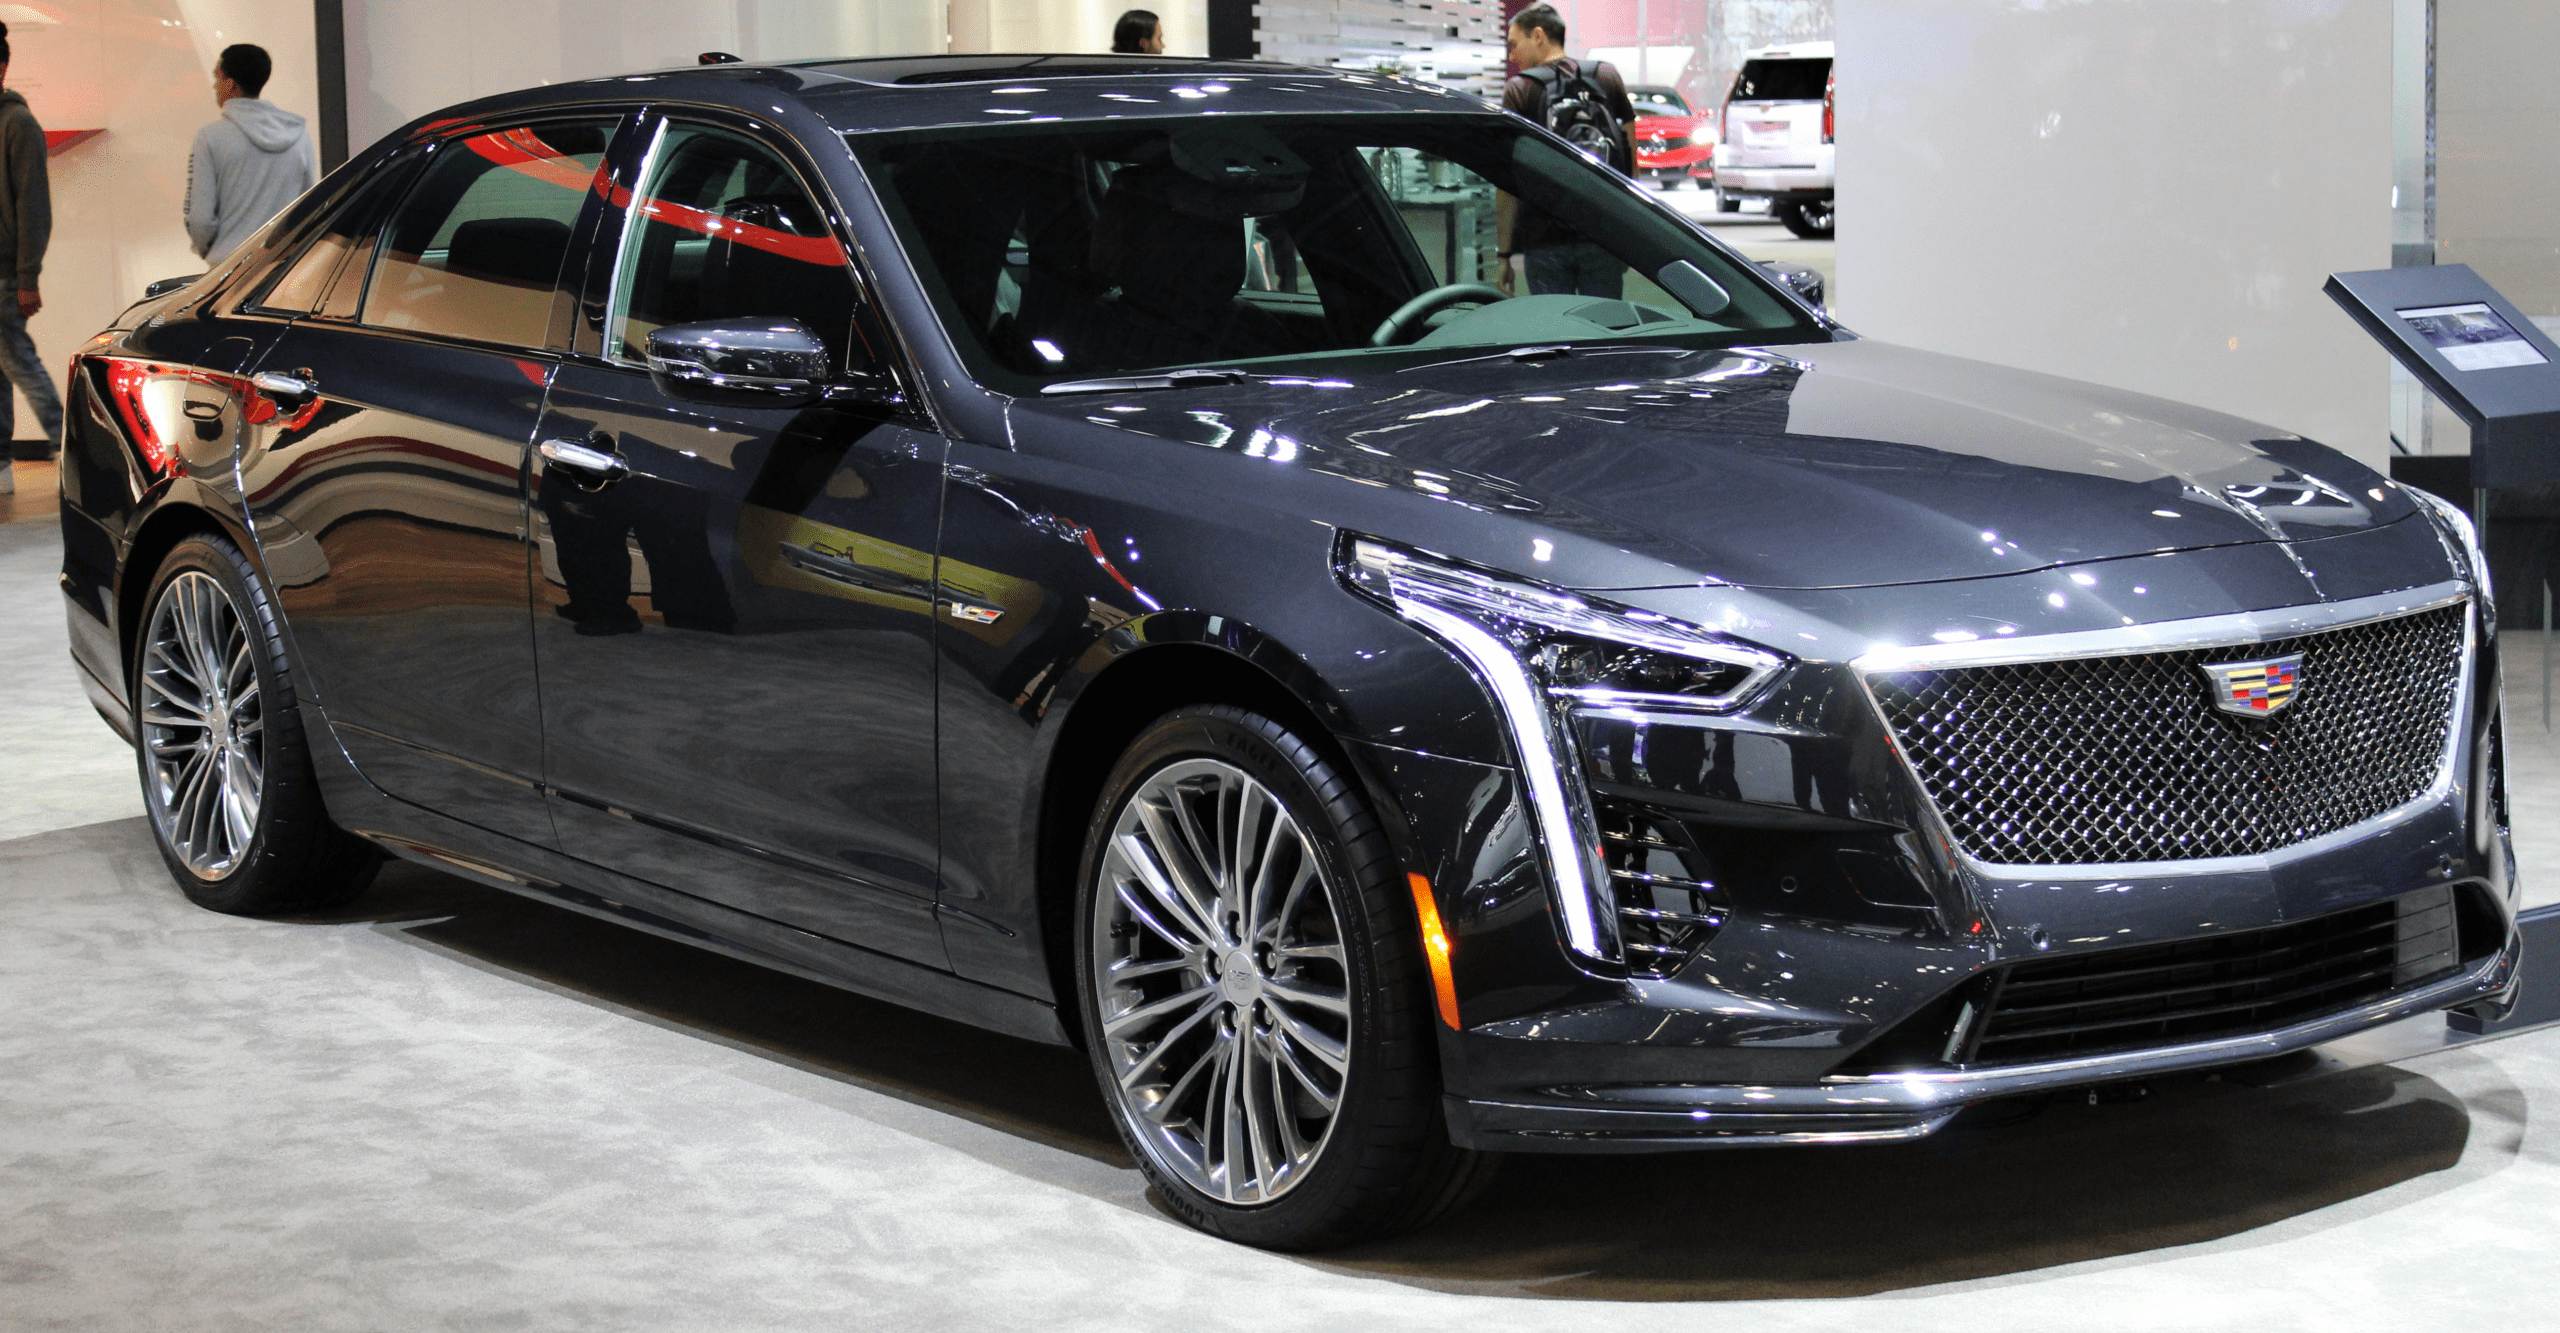 2021 Cadillac Fleetwood Series 75 Specs and Review